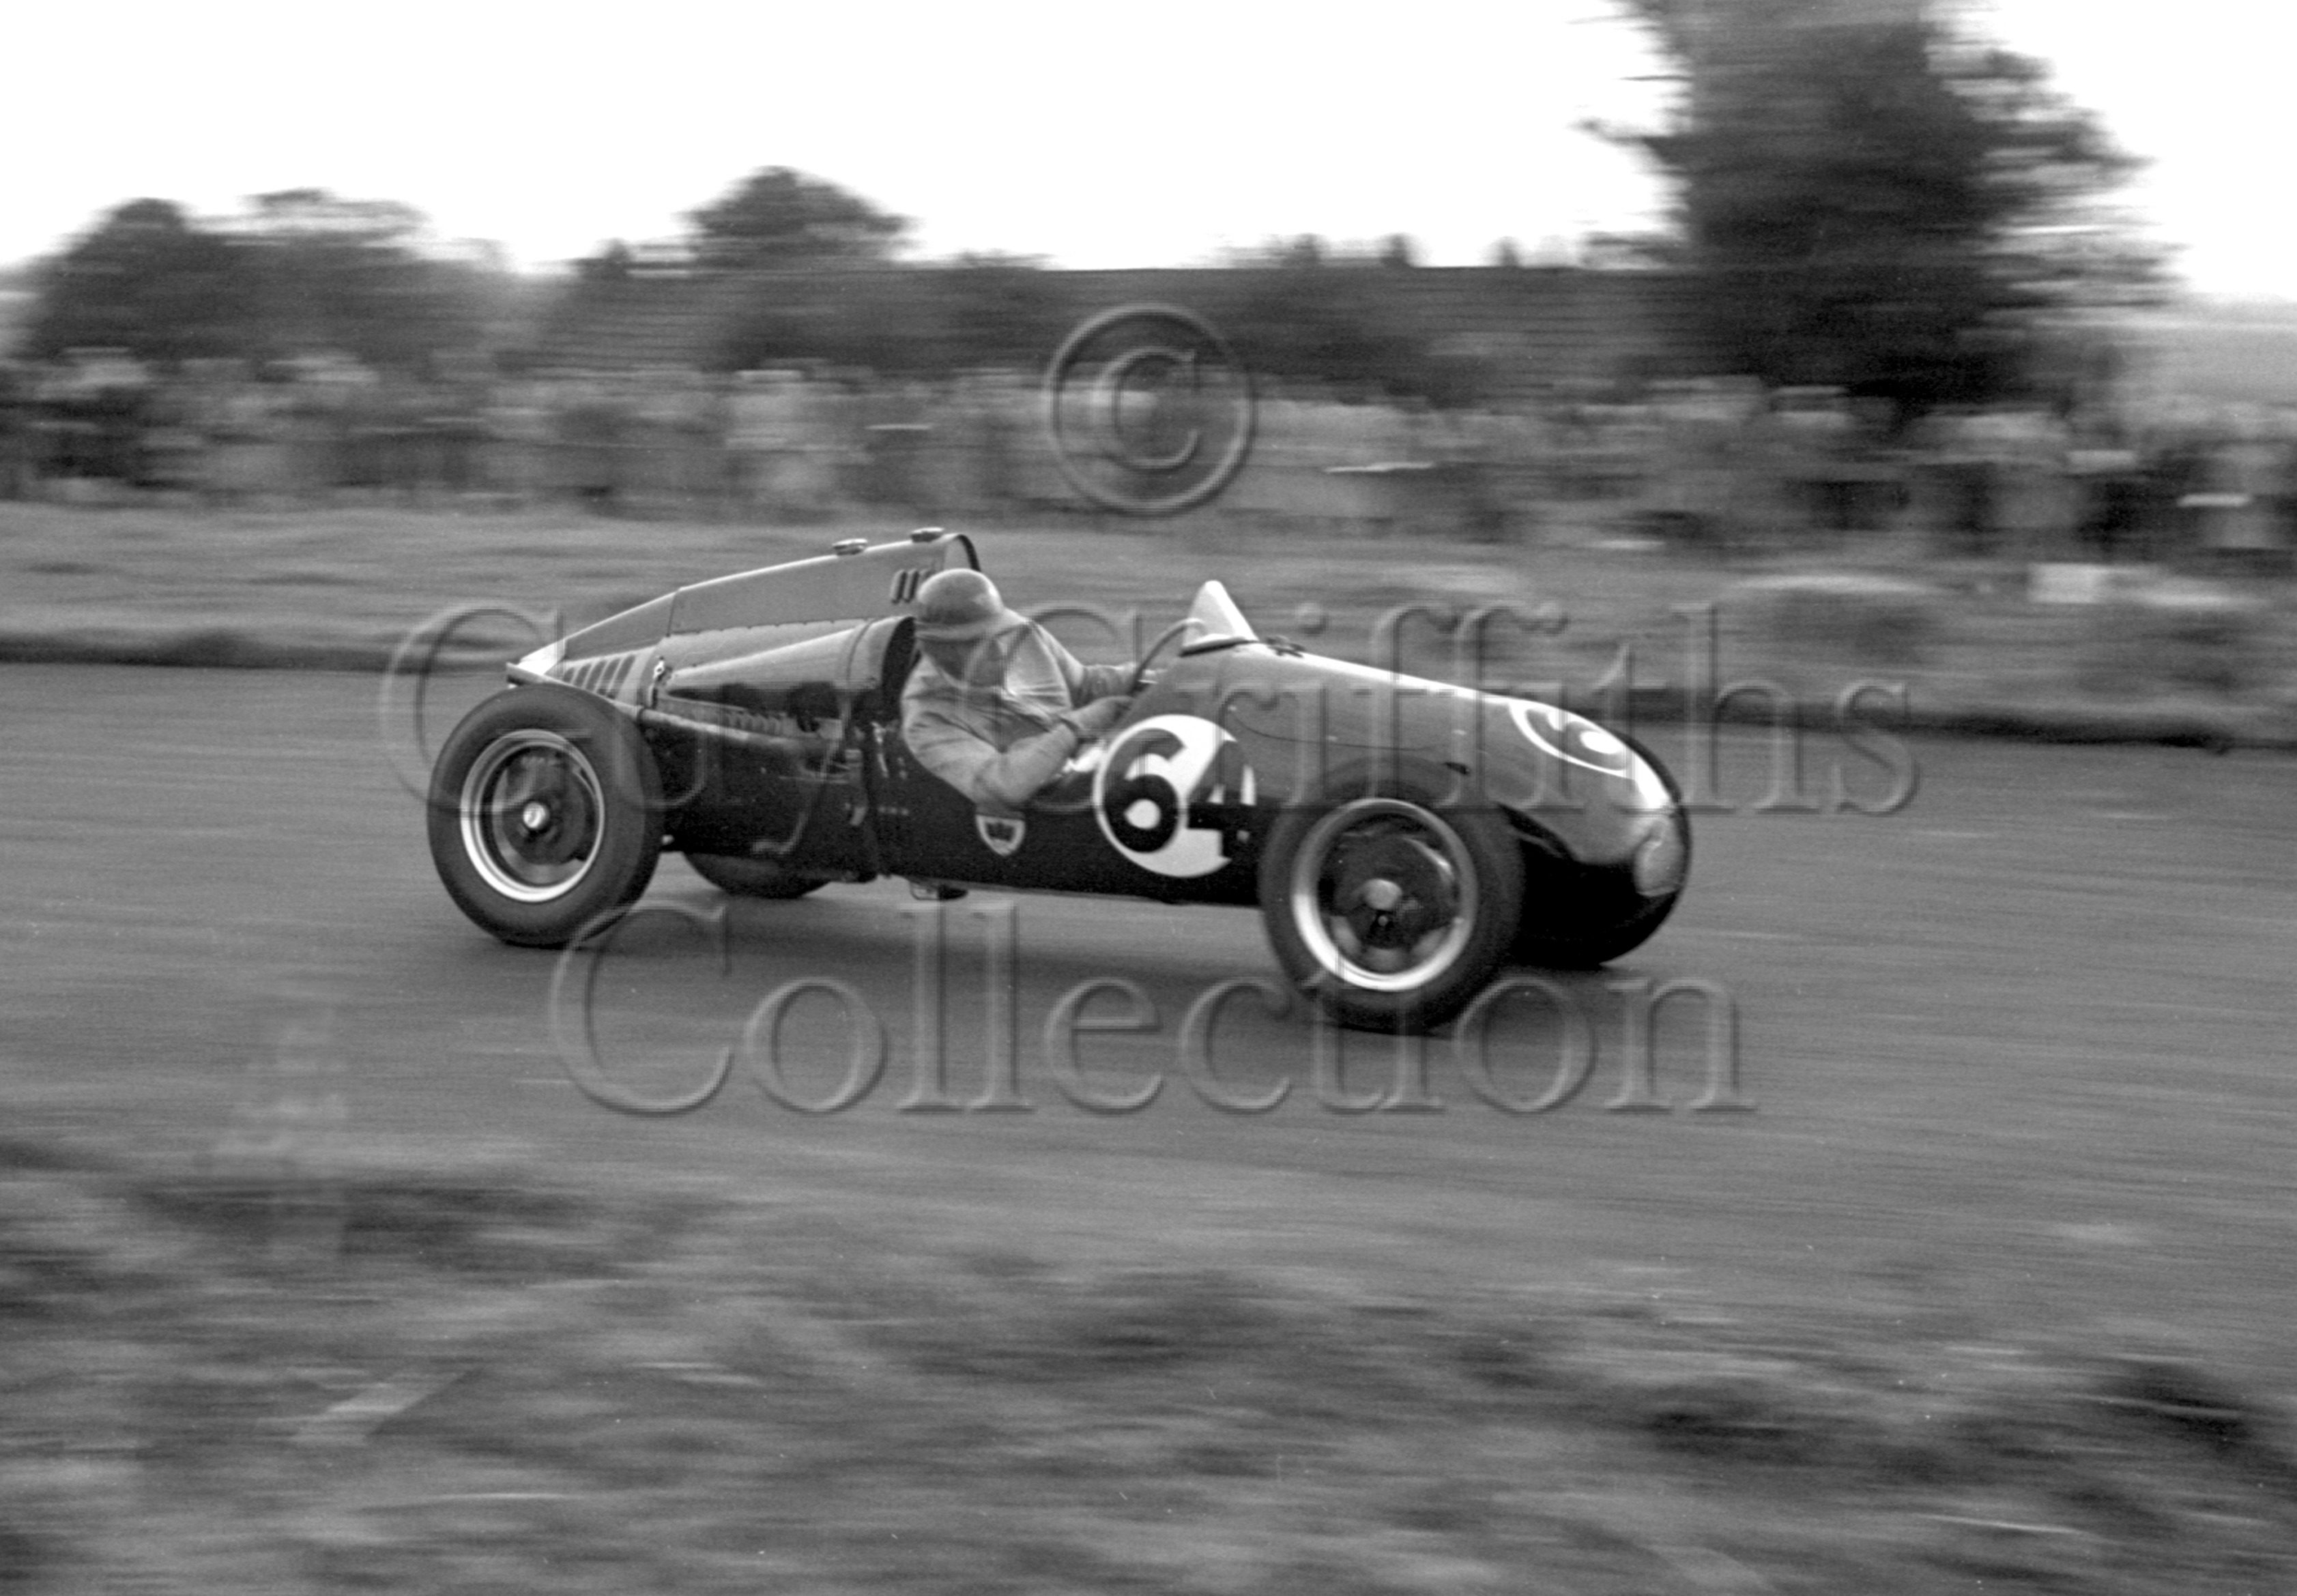 36-69—P-Collins–Cooper-Brighton–02-09-1950.jpg - The Guy Griffiths Collection